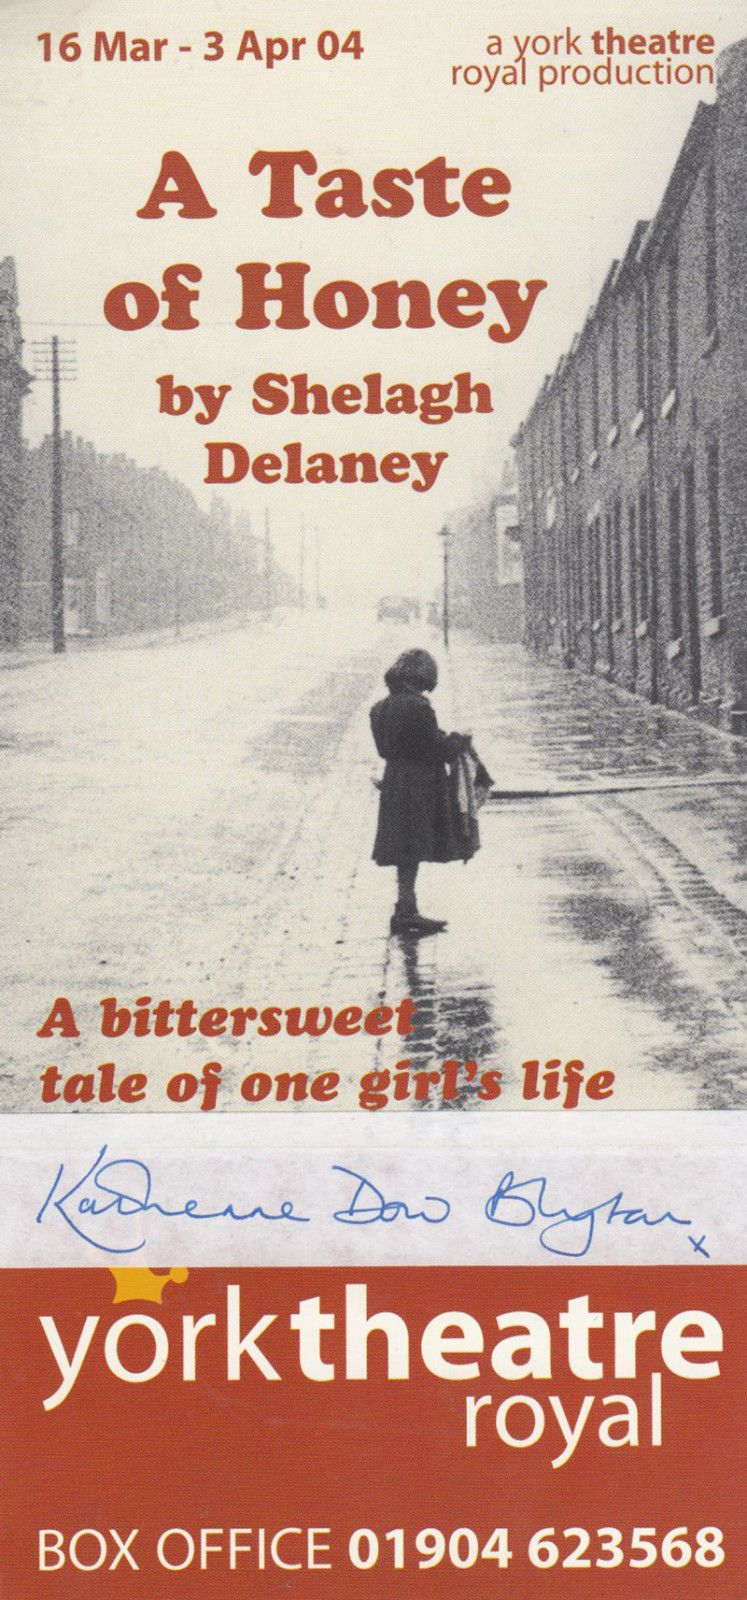 a taste of honey how does shelagh delaney present the changing factors of jos character essay A taste of honey shelagh delaney 1958 author biography when shelagh delaney began working on a taste of honey, she intended the material to be a novel but instead, in what has become a very famous story, delaney became disgusted at the lack of substance found in plays.